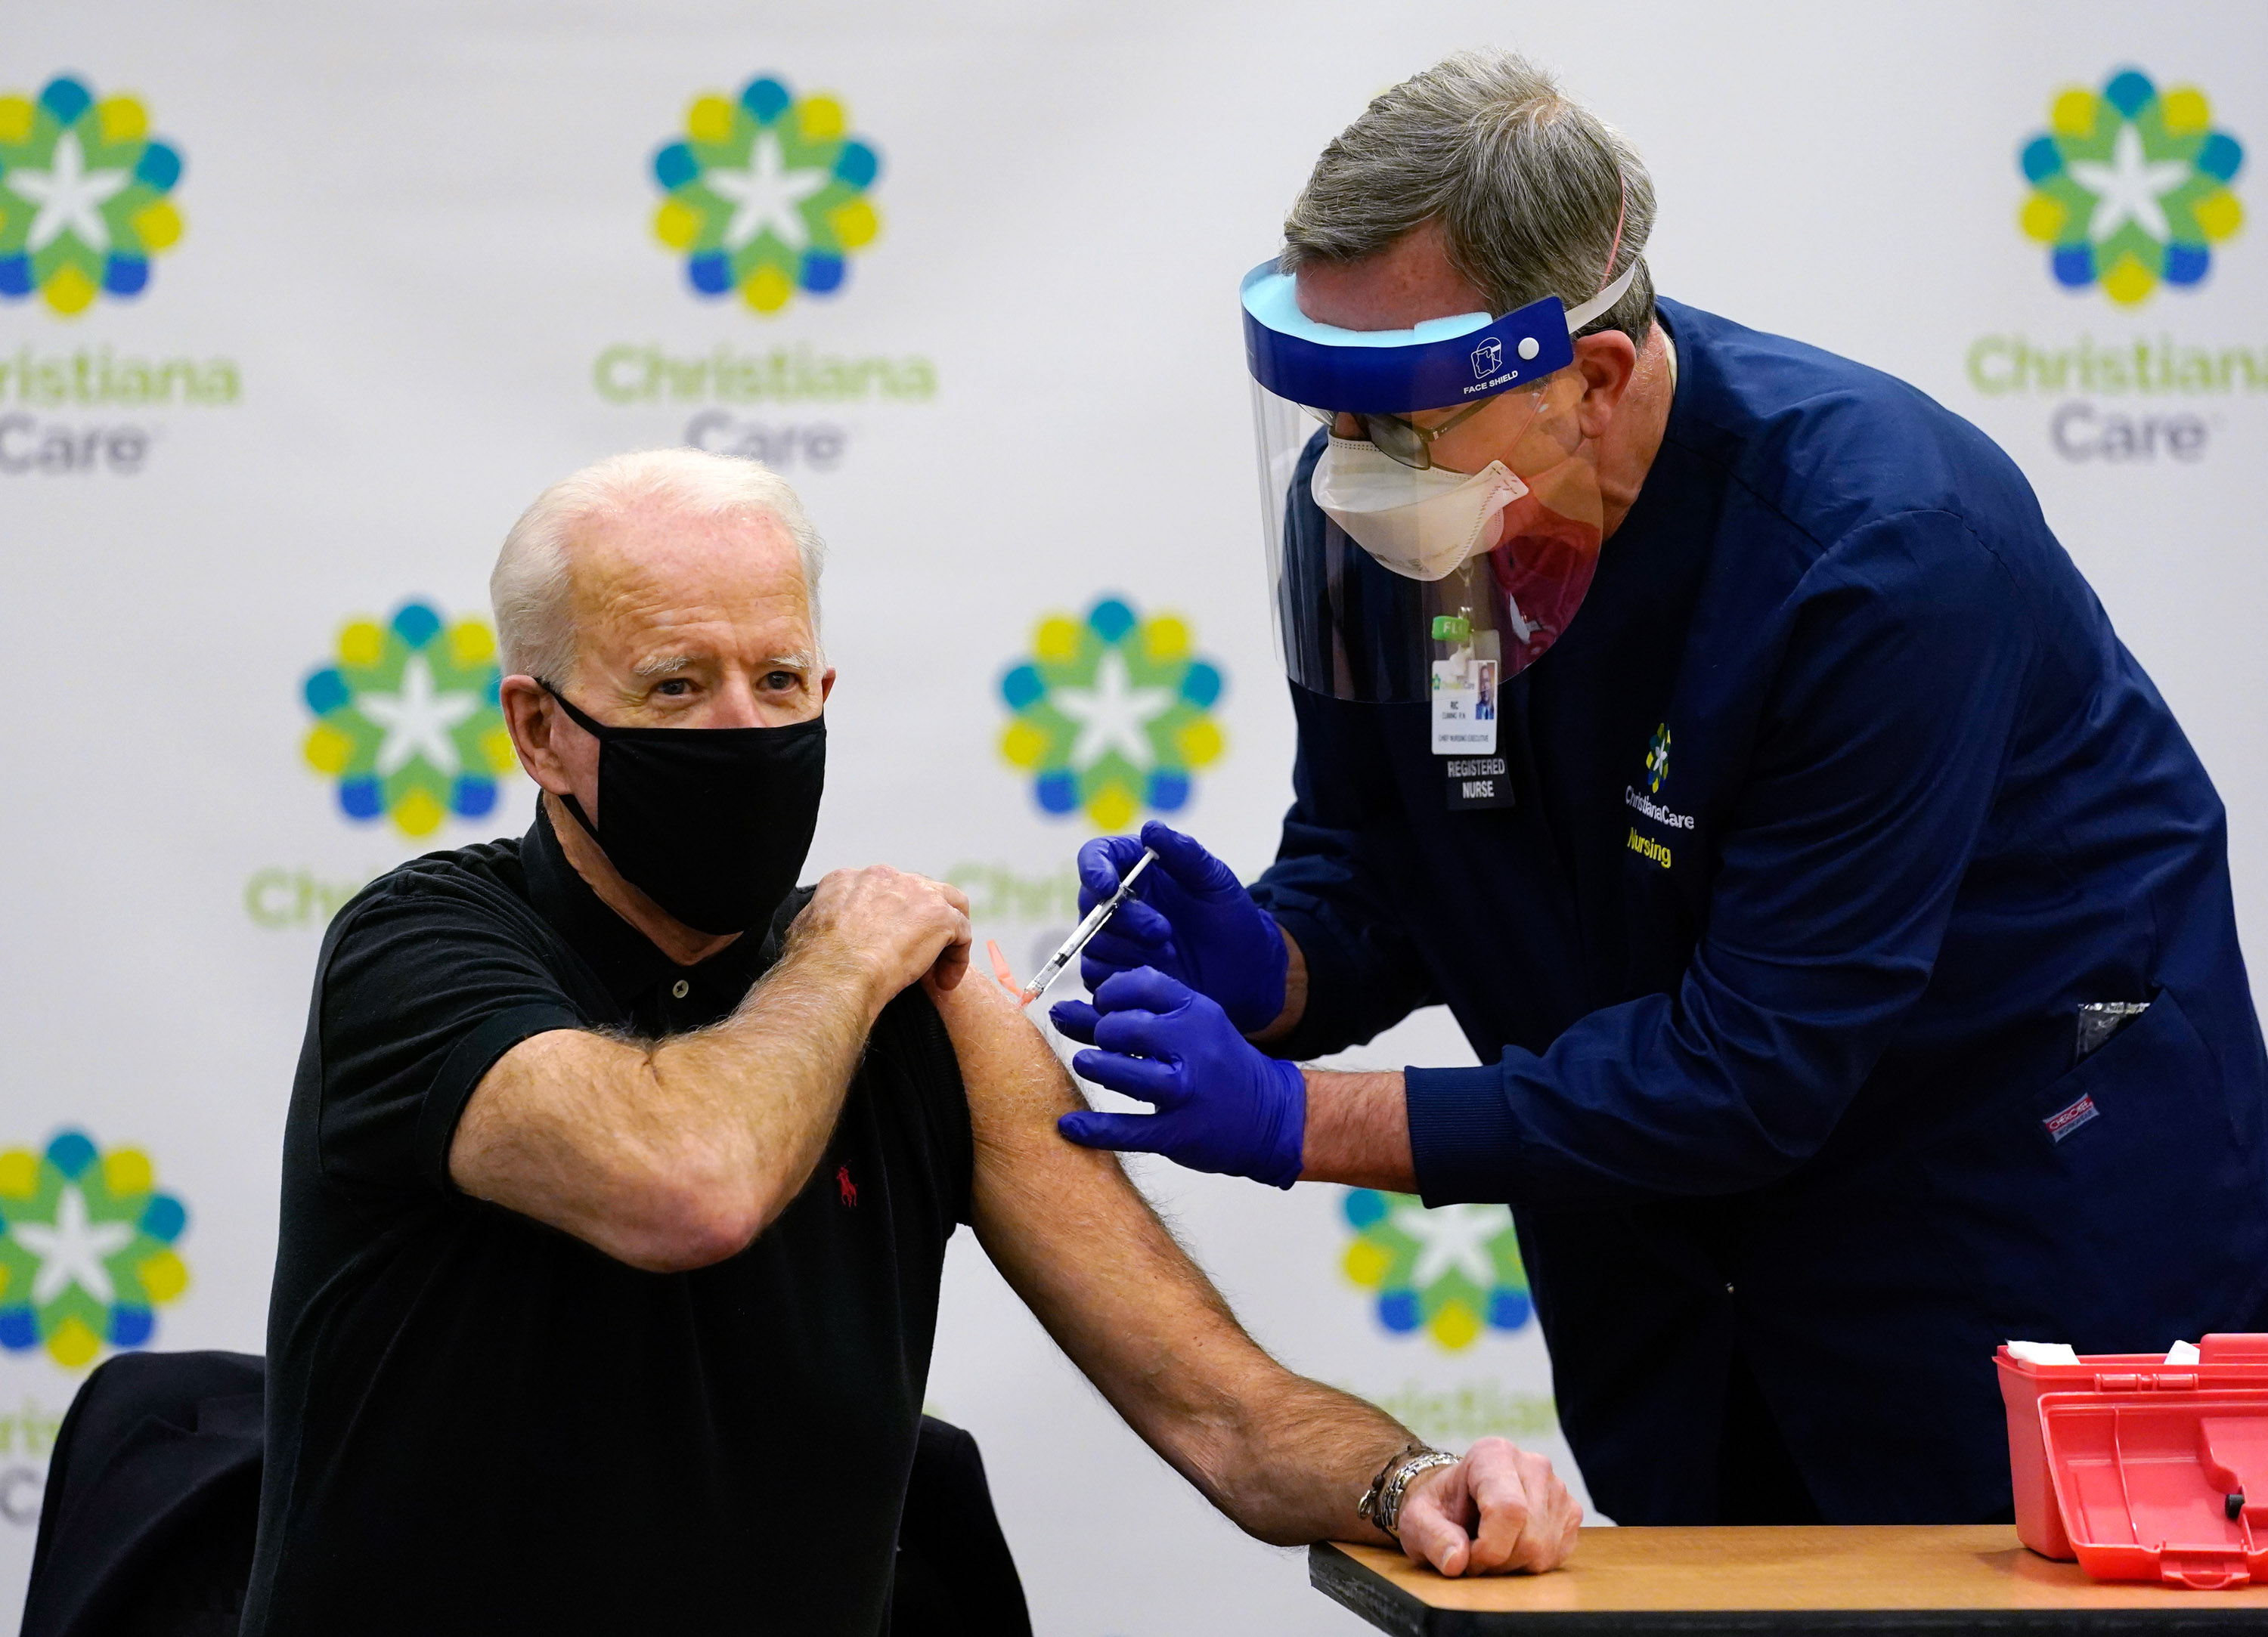 Biden gets second vaccine dose